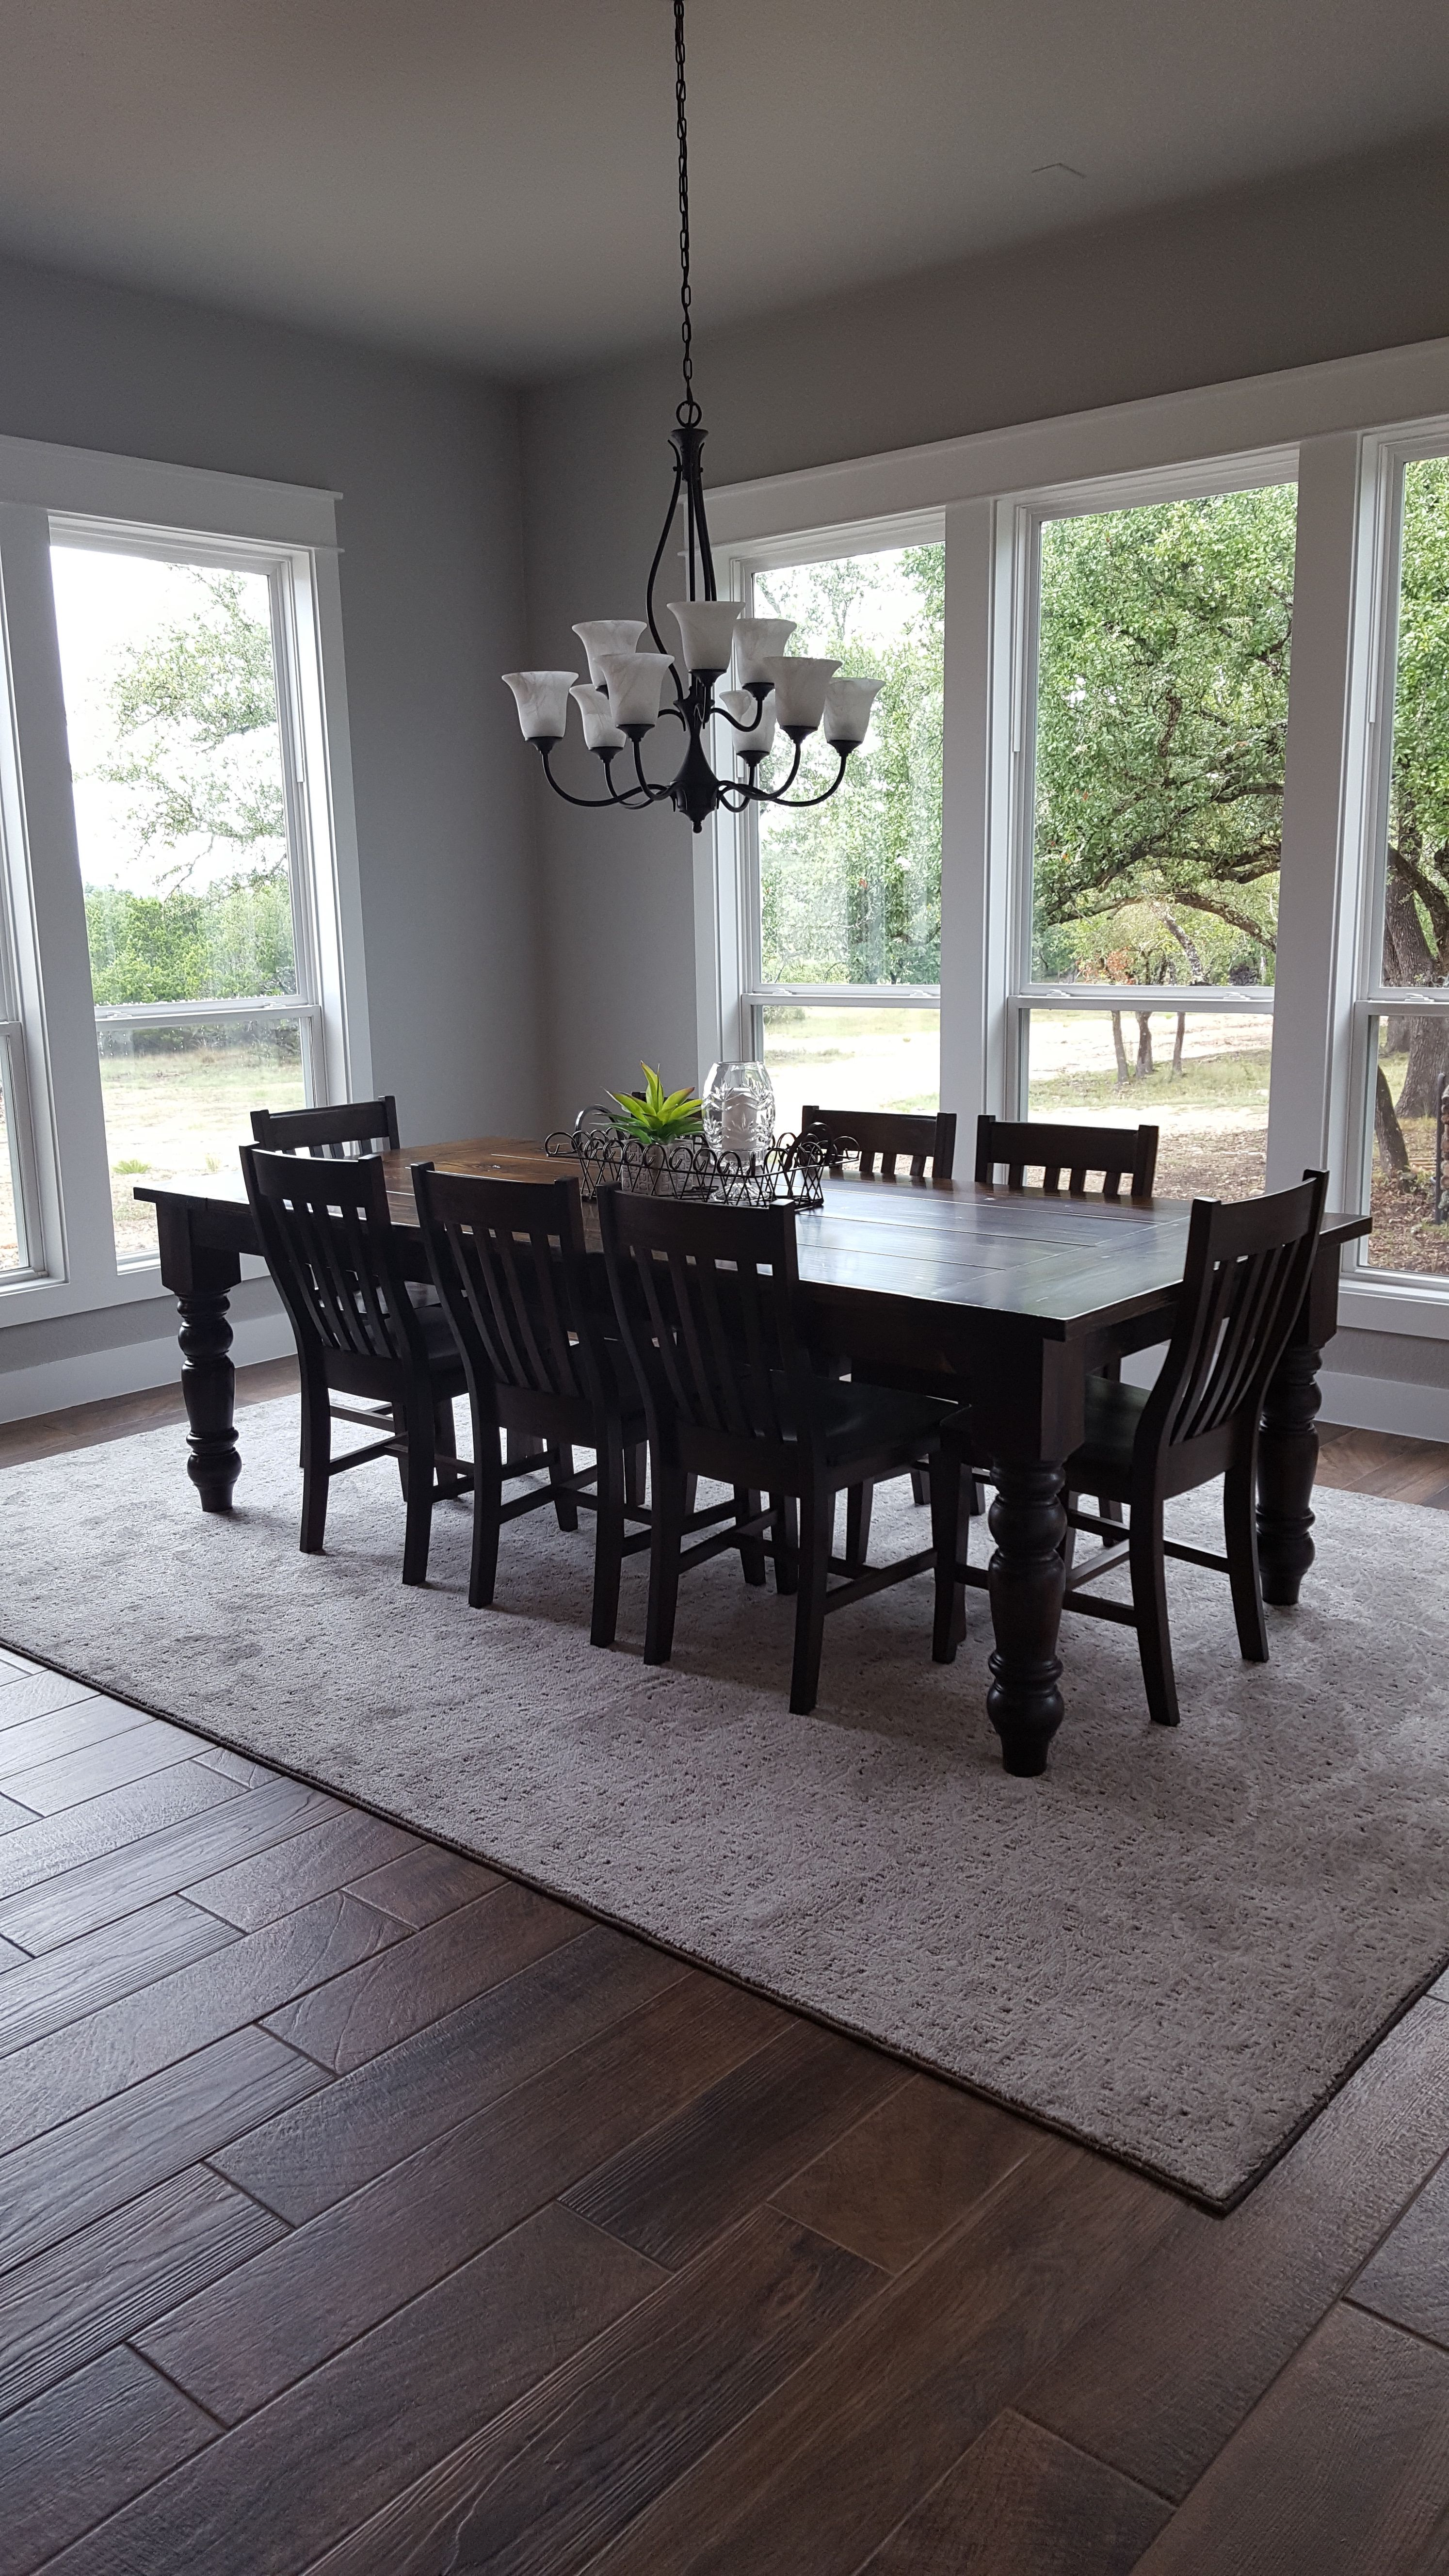 Beautiful Solid Wood Hand Made Baluster Turned Leg Dining Table In Dark Walnut Stain Dark Wood Dining Table Farmhouse Table Legs Farmhouse Dining Room Table